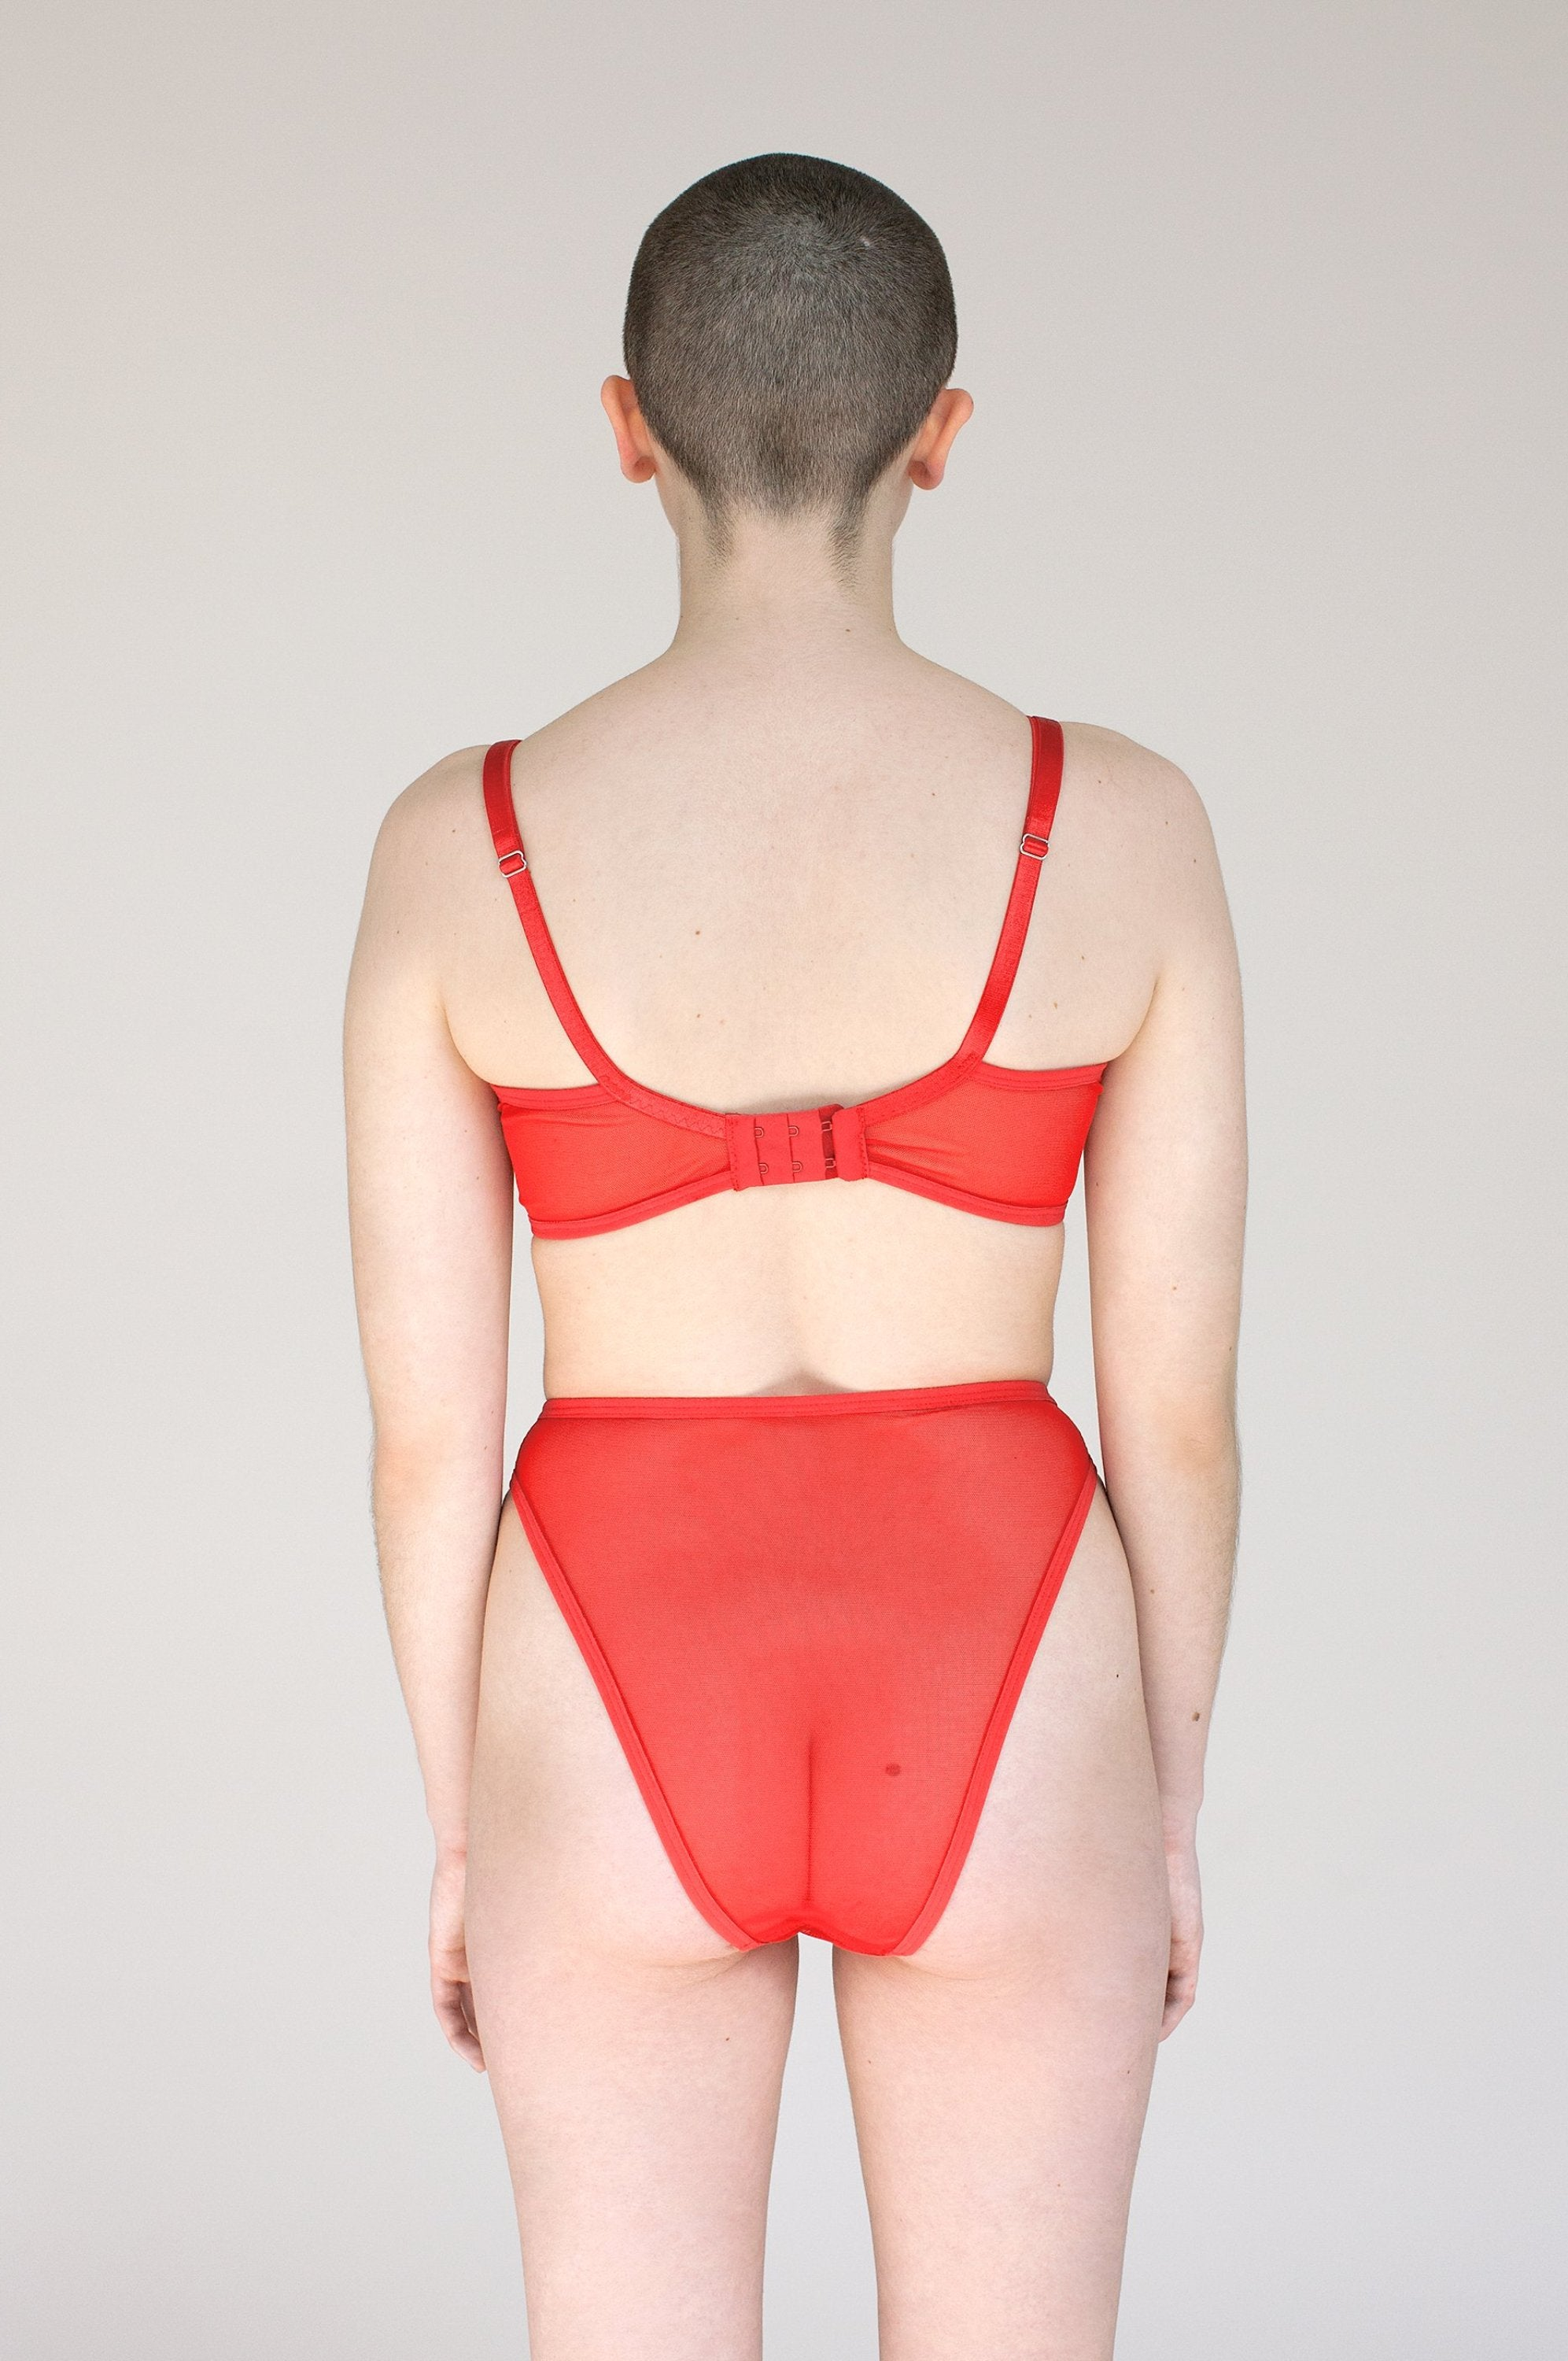 Lee Panties - High-Waisted French Cut Mesh Underwear in Red